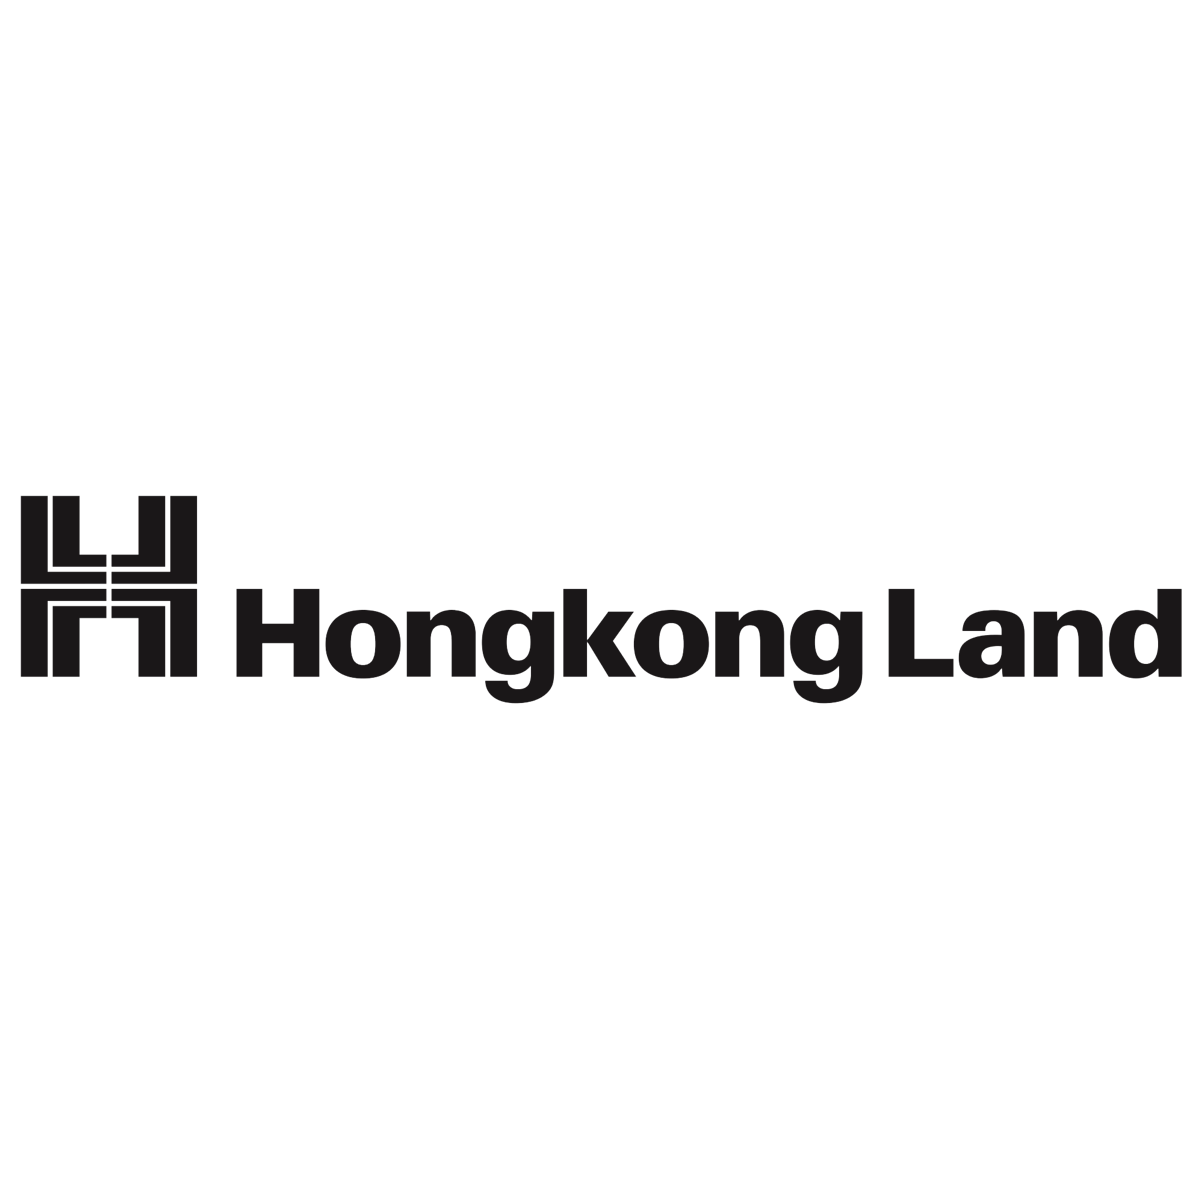 HONGKONG LAND HOLDINGS LIMITED (H78.SI)